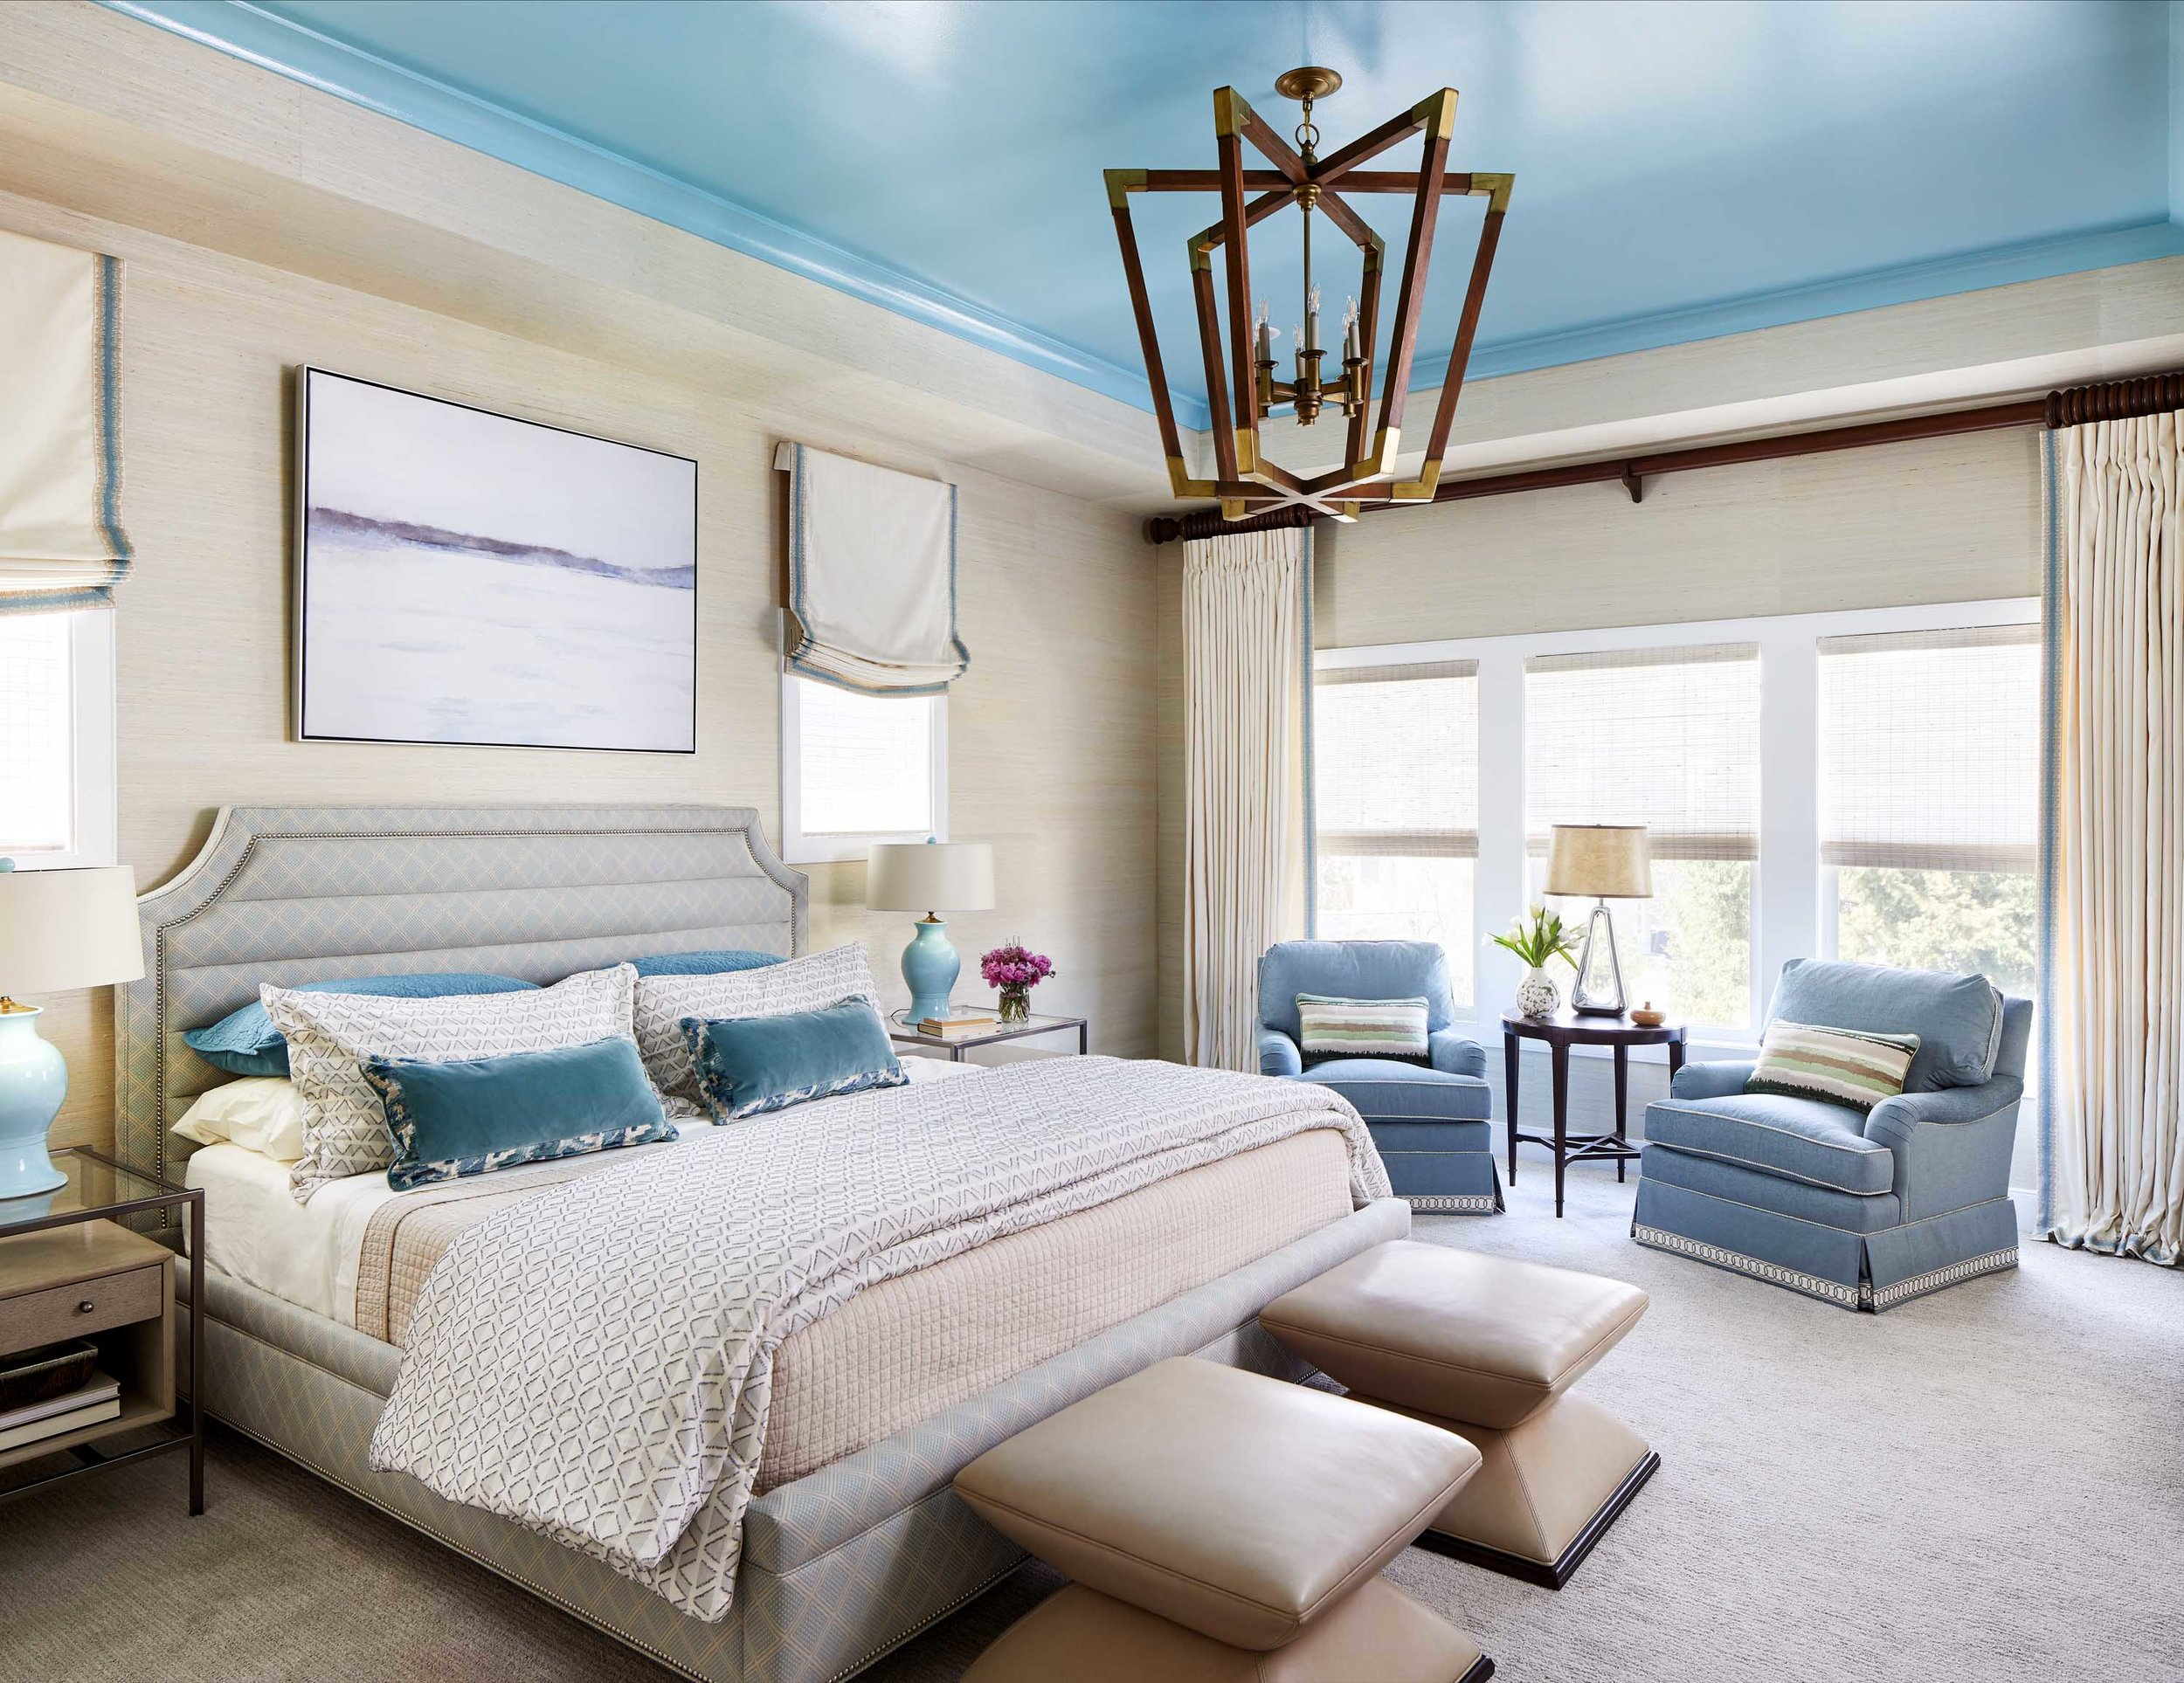 Luxurious bedroom with sky blue ceiling best of Boston Cambridge DC top-designers Dane Austin Design